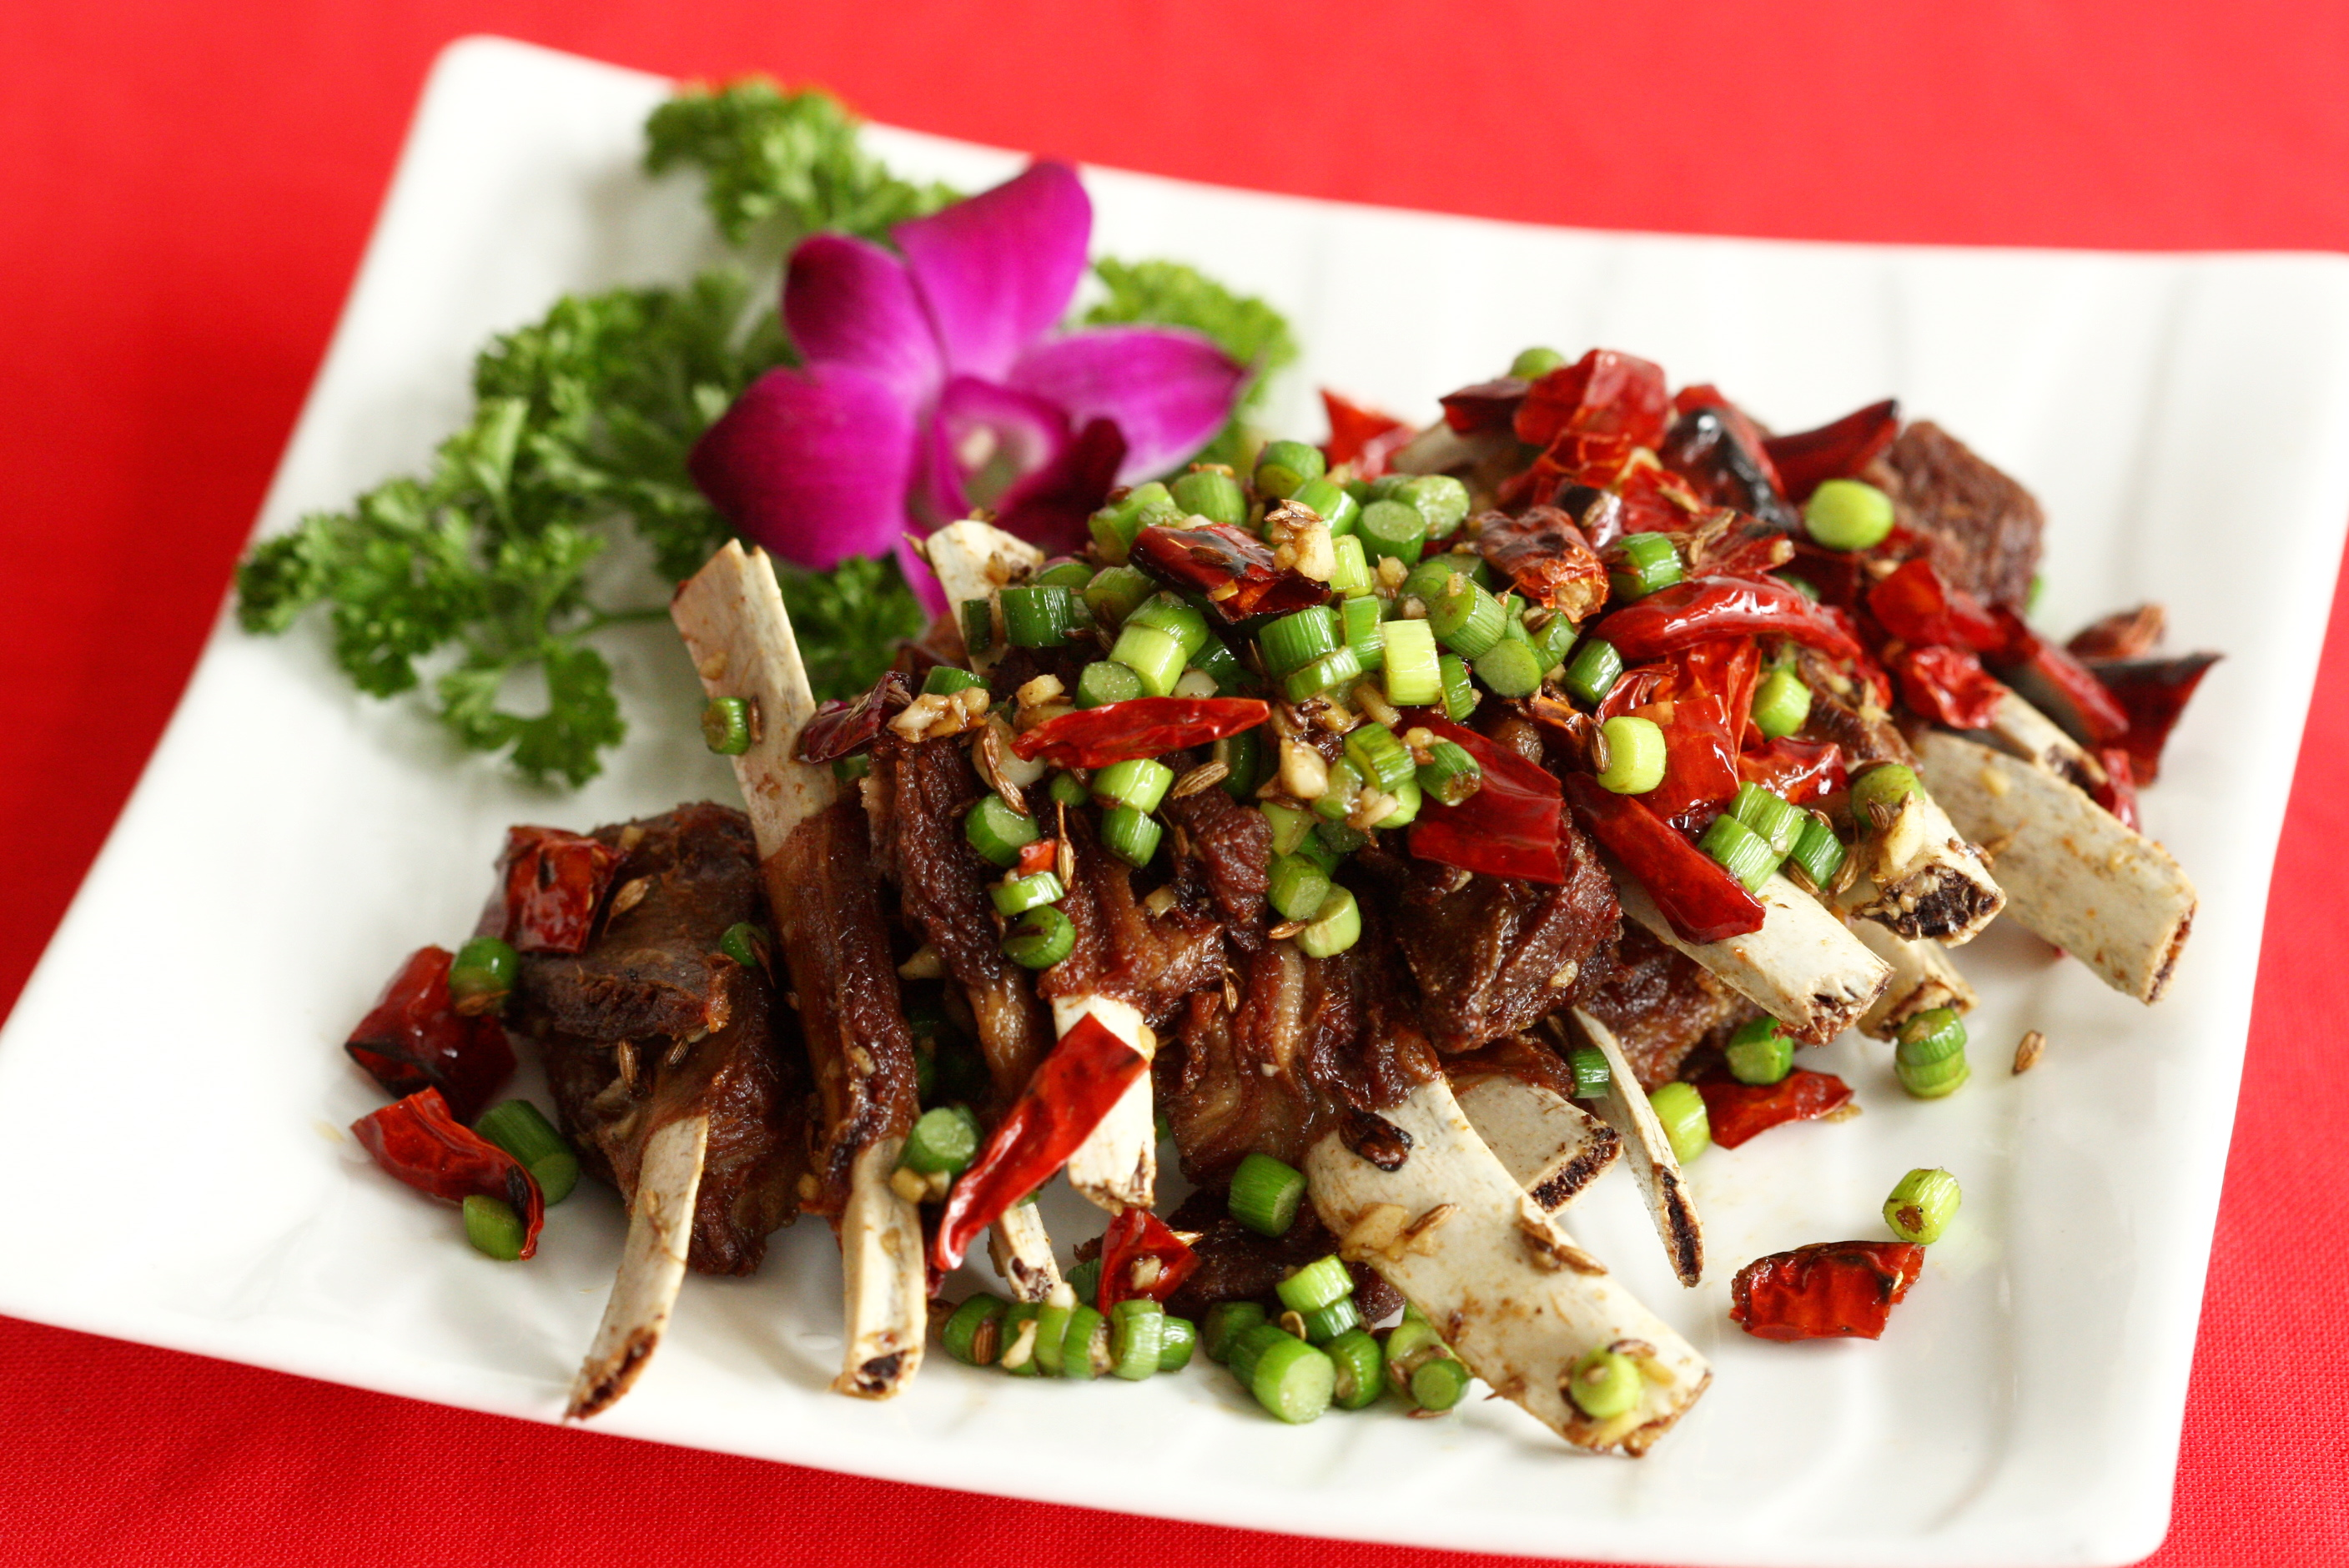 Enjoy spicy hunanese cuisine at restaurant xiang li place for Cuisine xiang